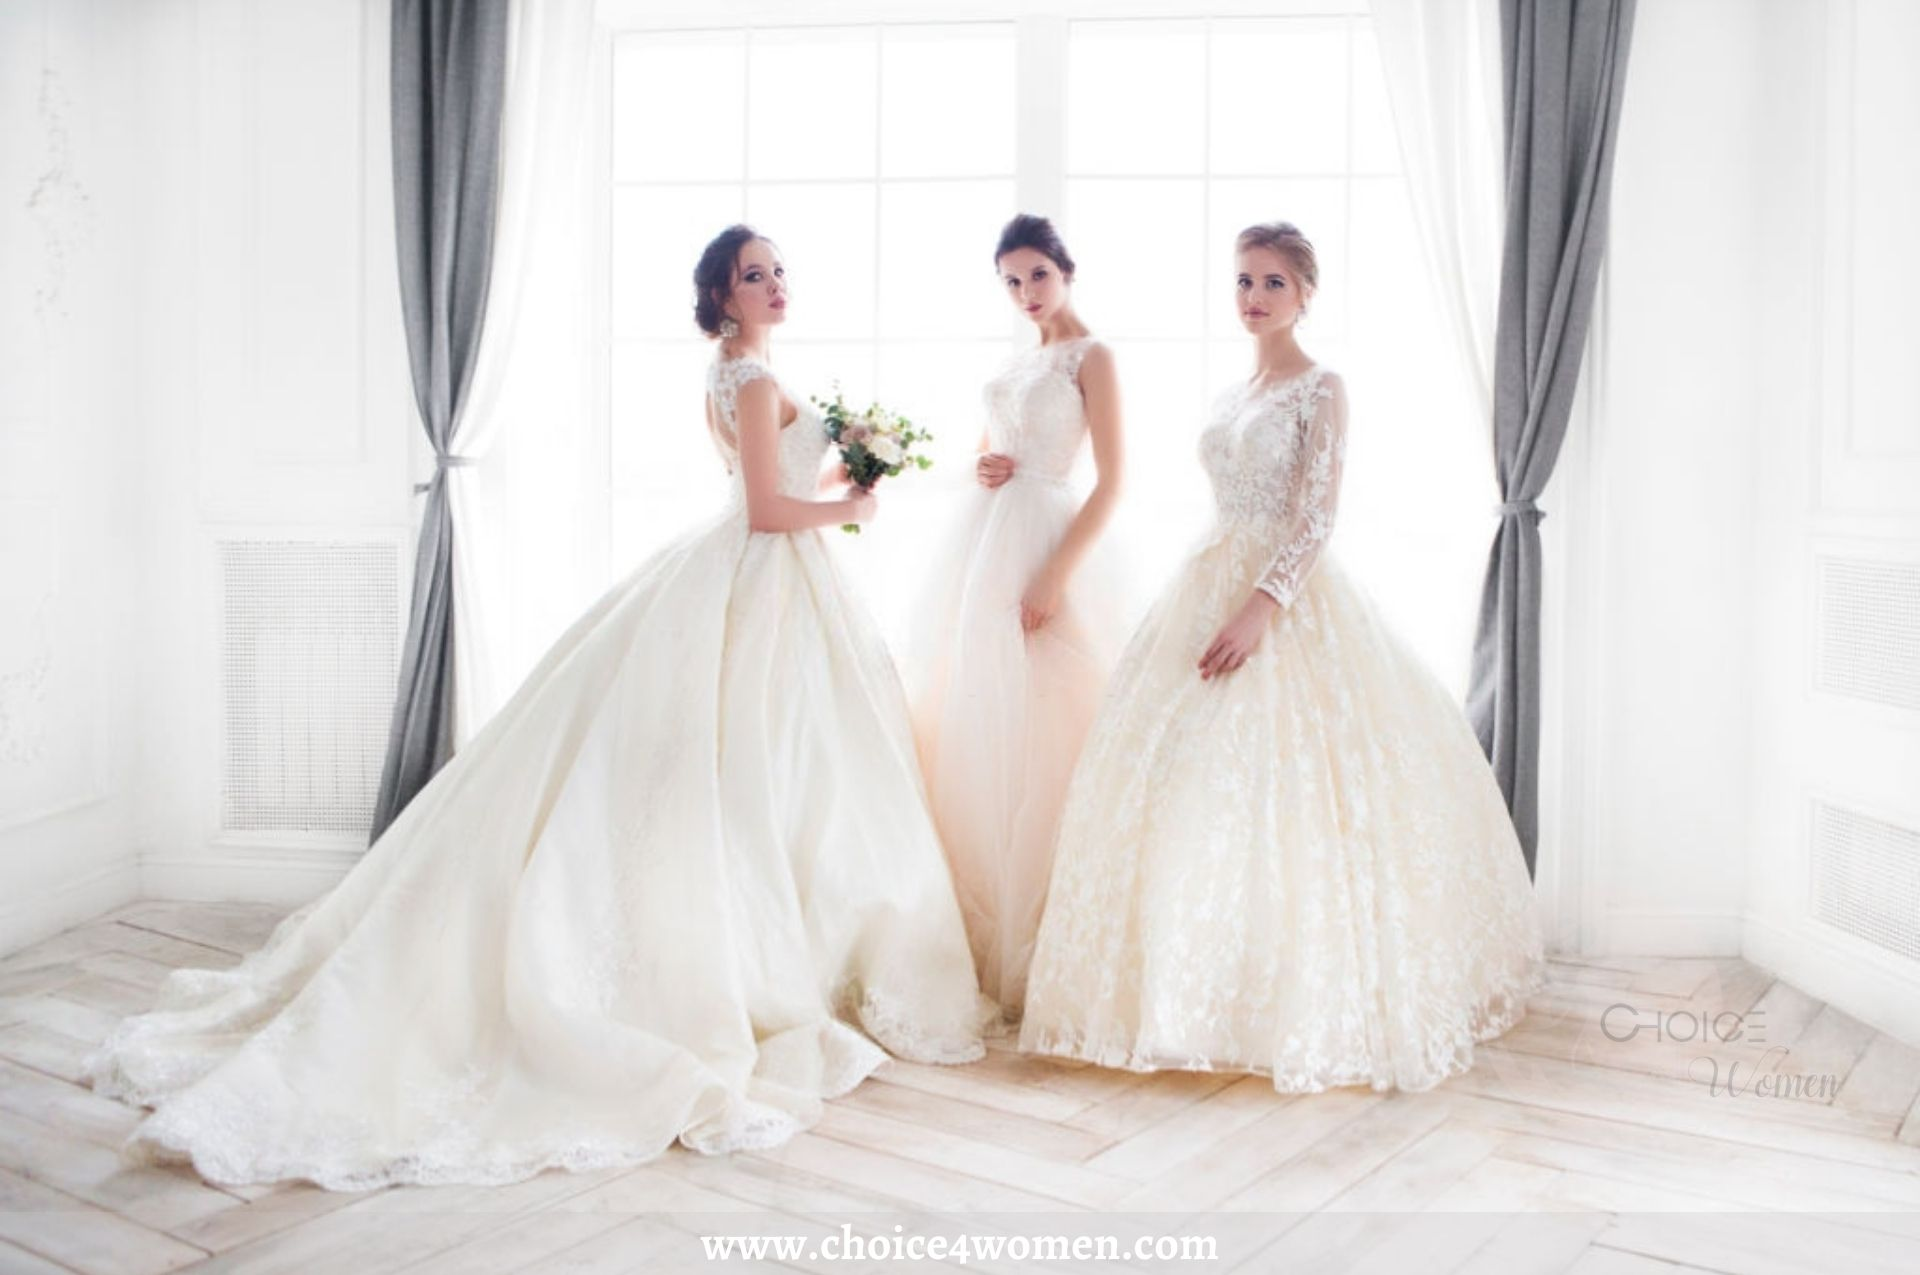 30 Top Latest Trends of Wedding Outfits for the Big Day